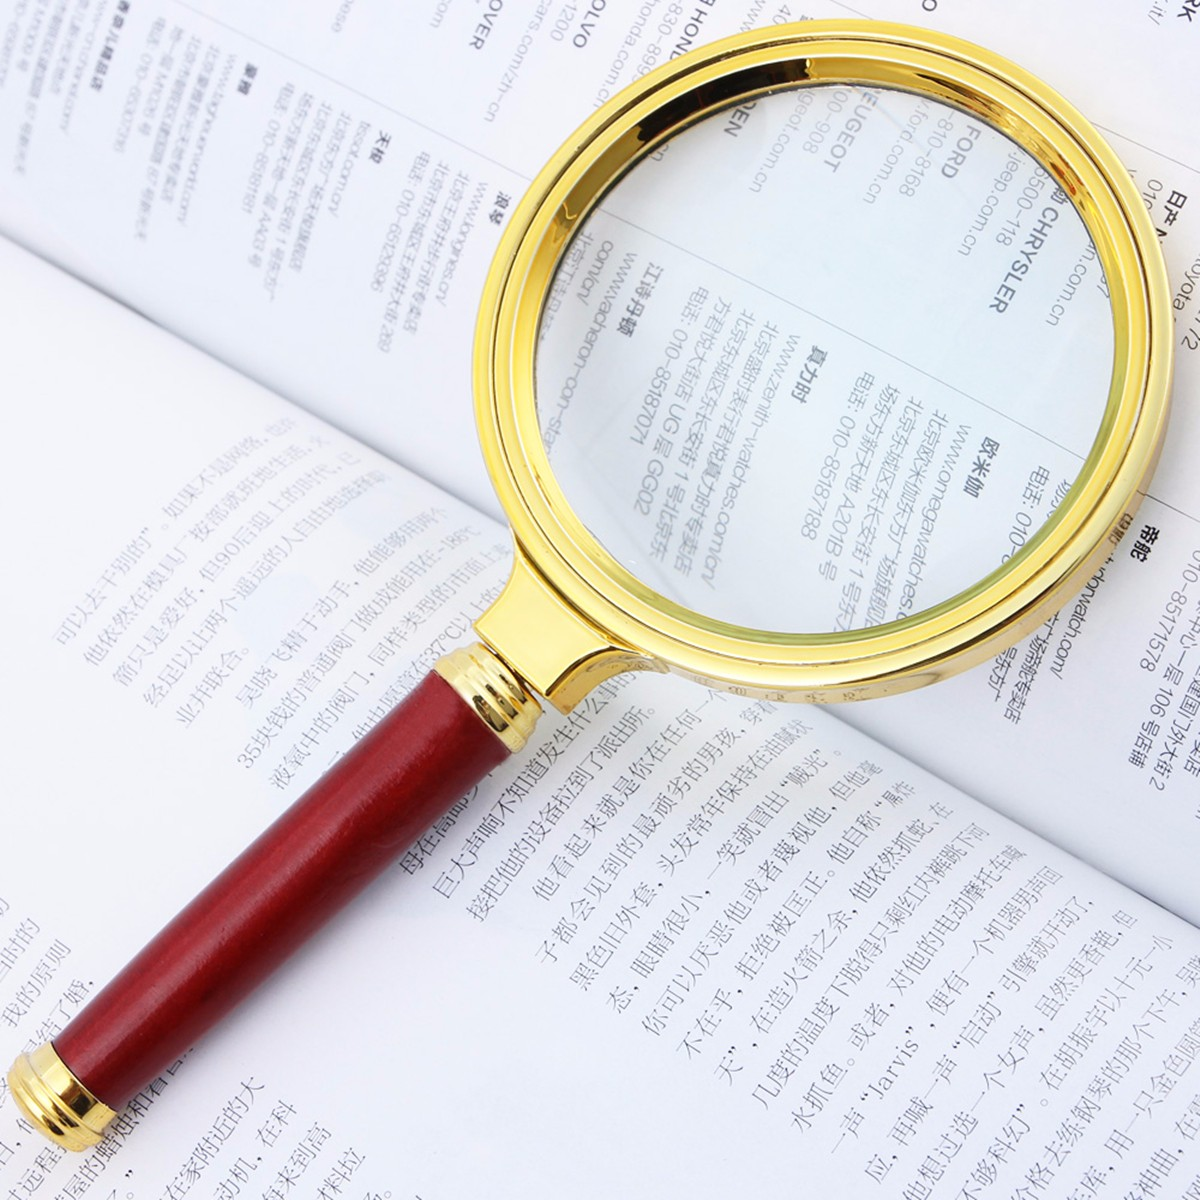 """10X 70mm Handheld Portable Magnifier 2"""" Reading Jewelry Loupe Magnifying Glass - Lightweight Design-Clearance"""